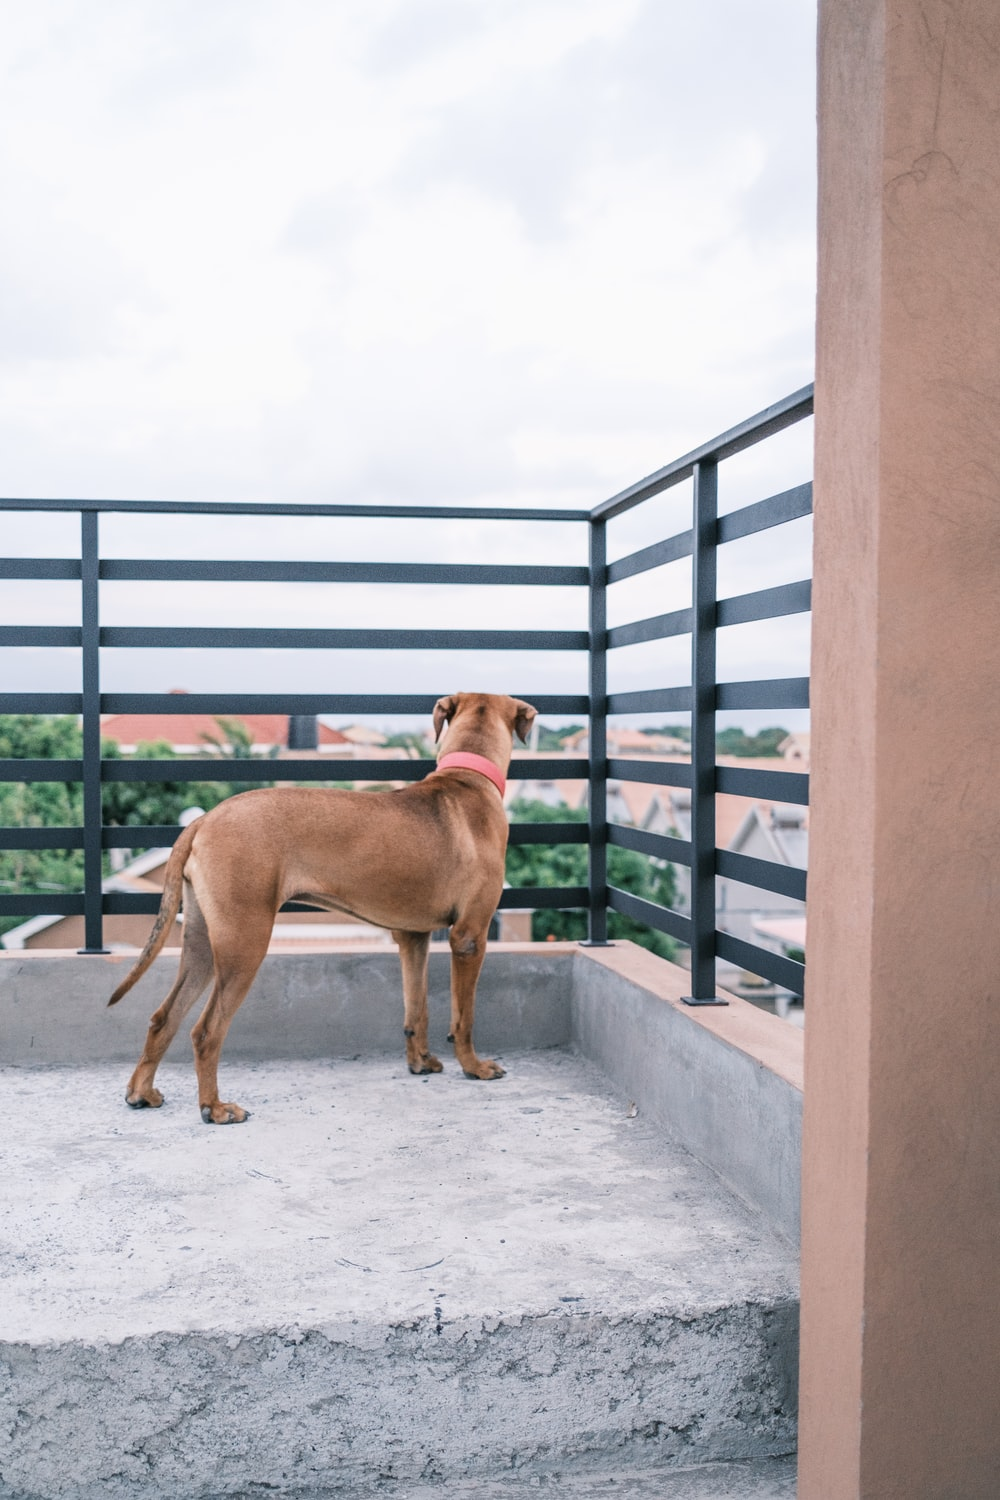 brown short coated medium sized dog on gray concrete floor during daytime